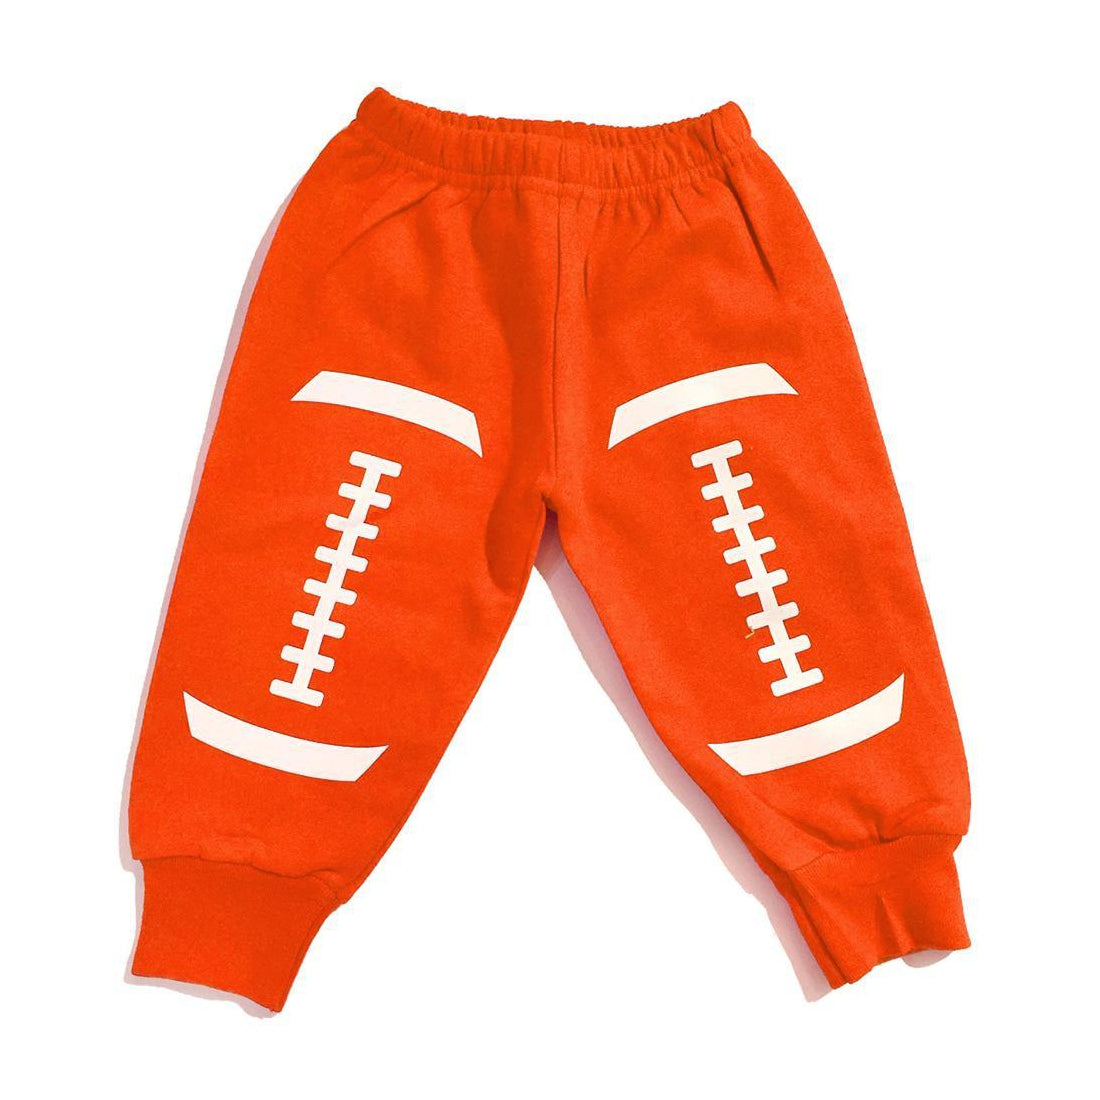 Football Sweatpants - Orange